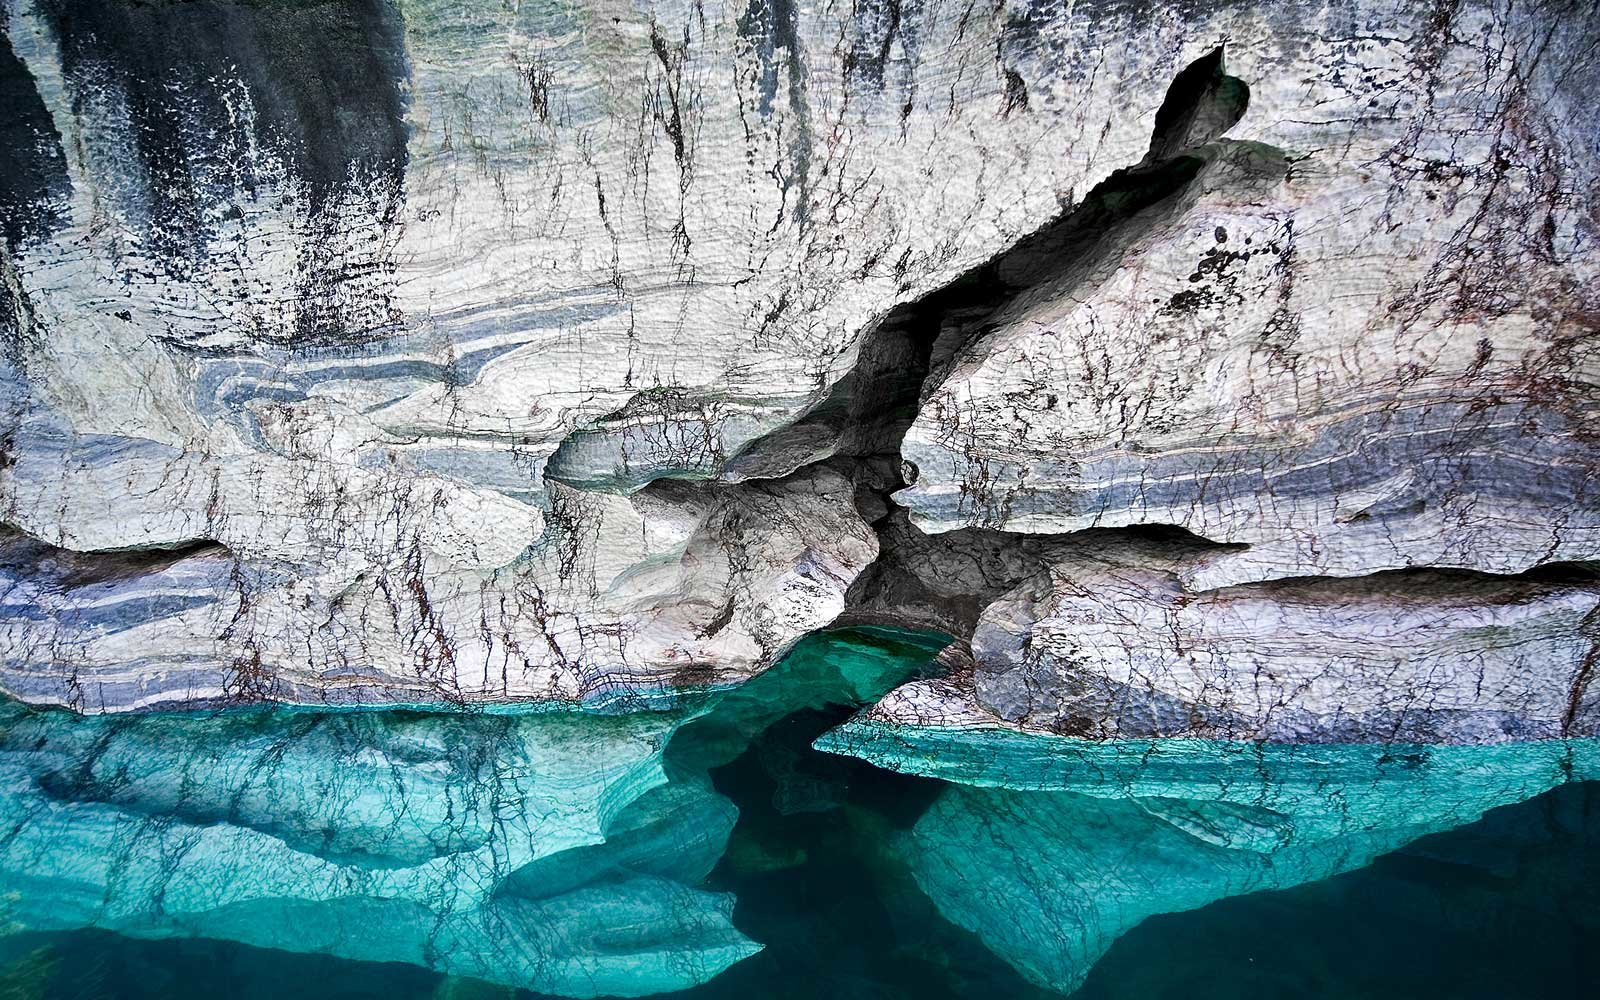 Underwater Look at the Marble Caves